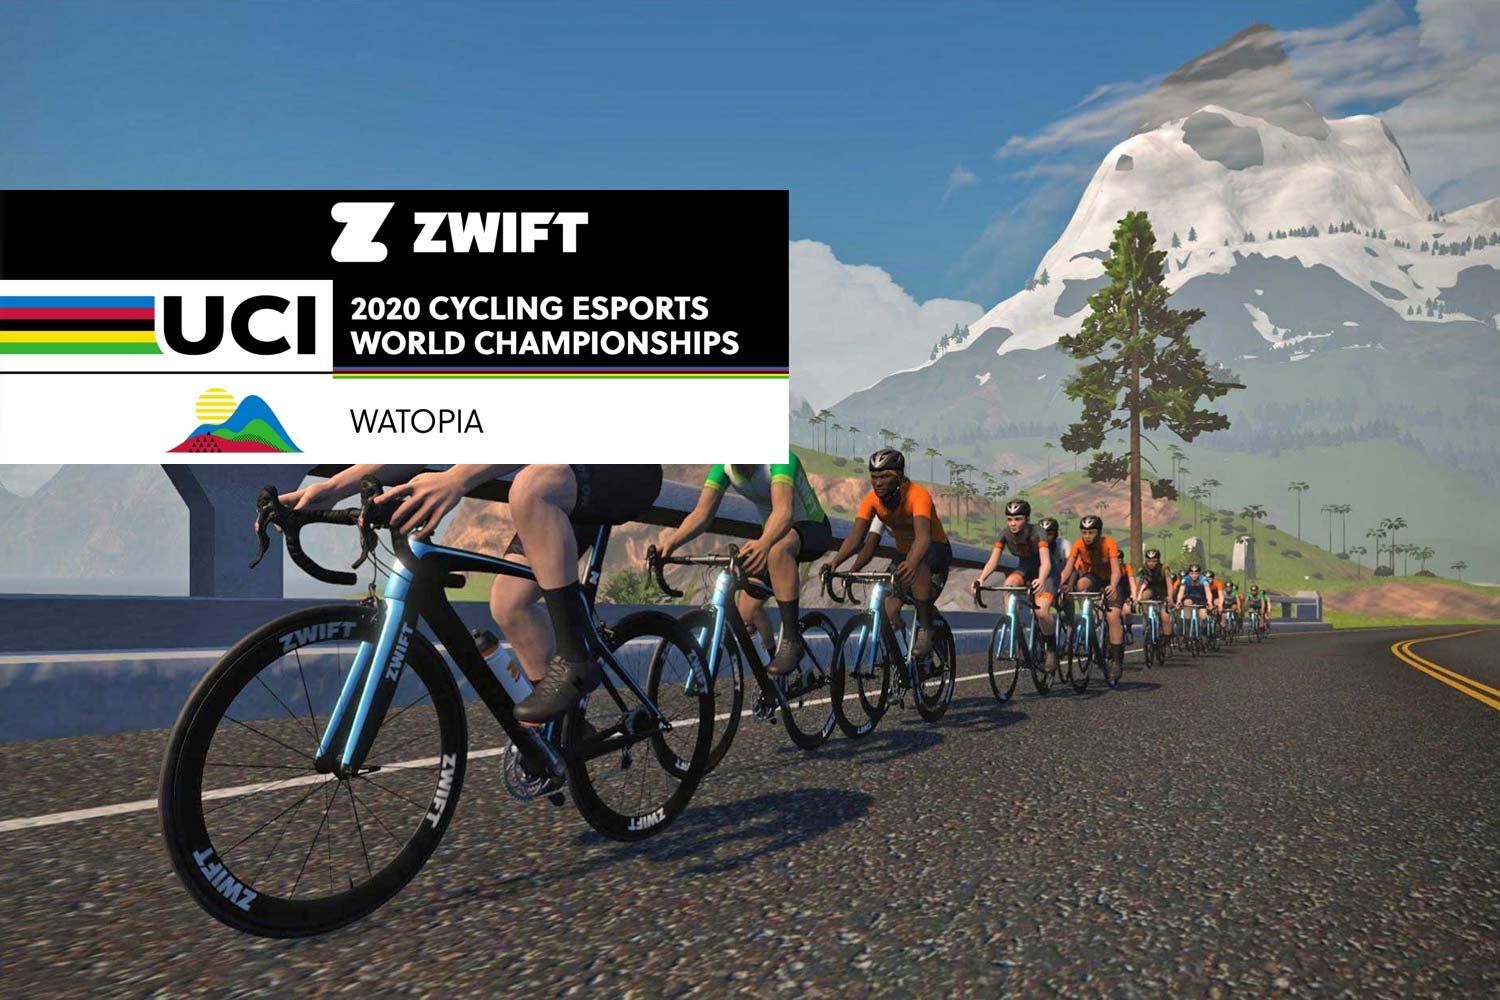 2020 UCI Cycling eSports World Champs in Watopia course